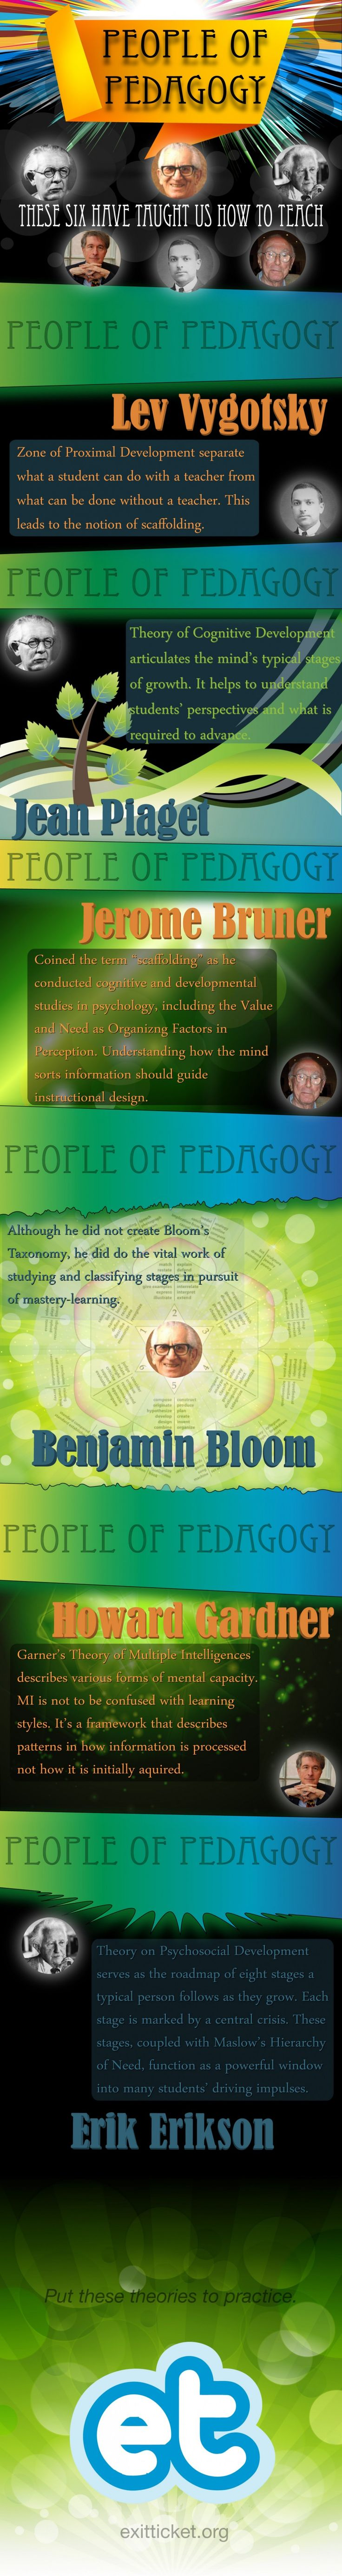 The People of Pedagogy Infographic | e-Learning Infographics -- Erikson, Piaget, Vygotsky....